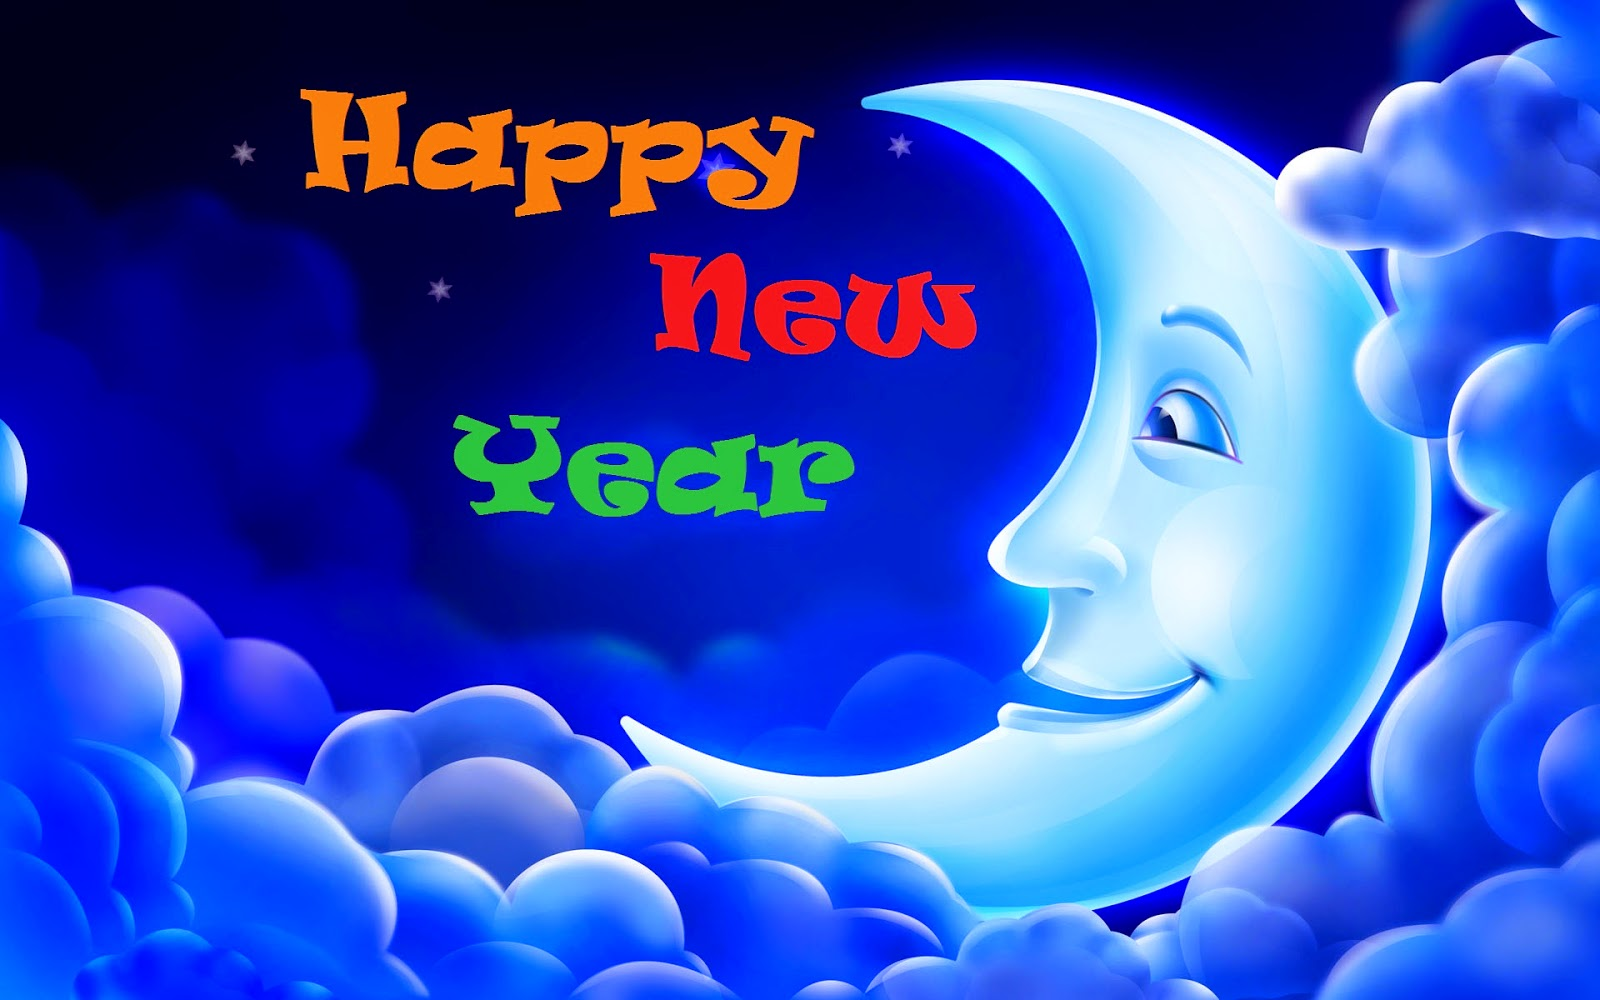 Free Download Happy New Year 2015 Desktop Background